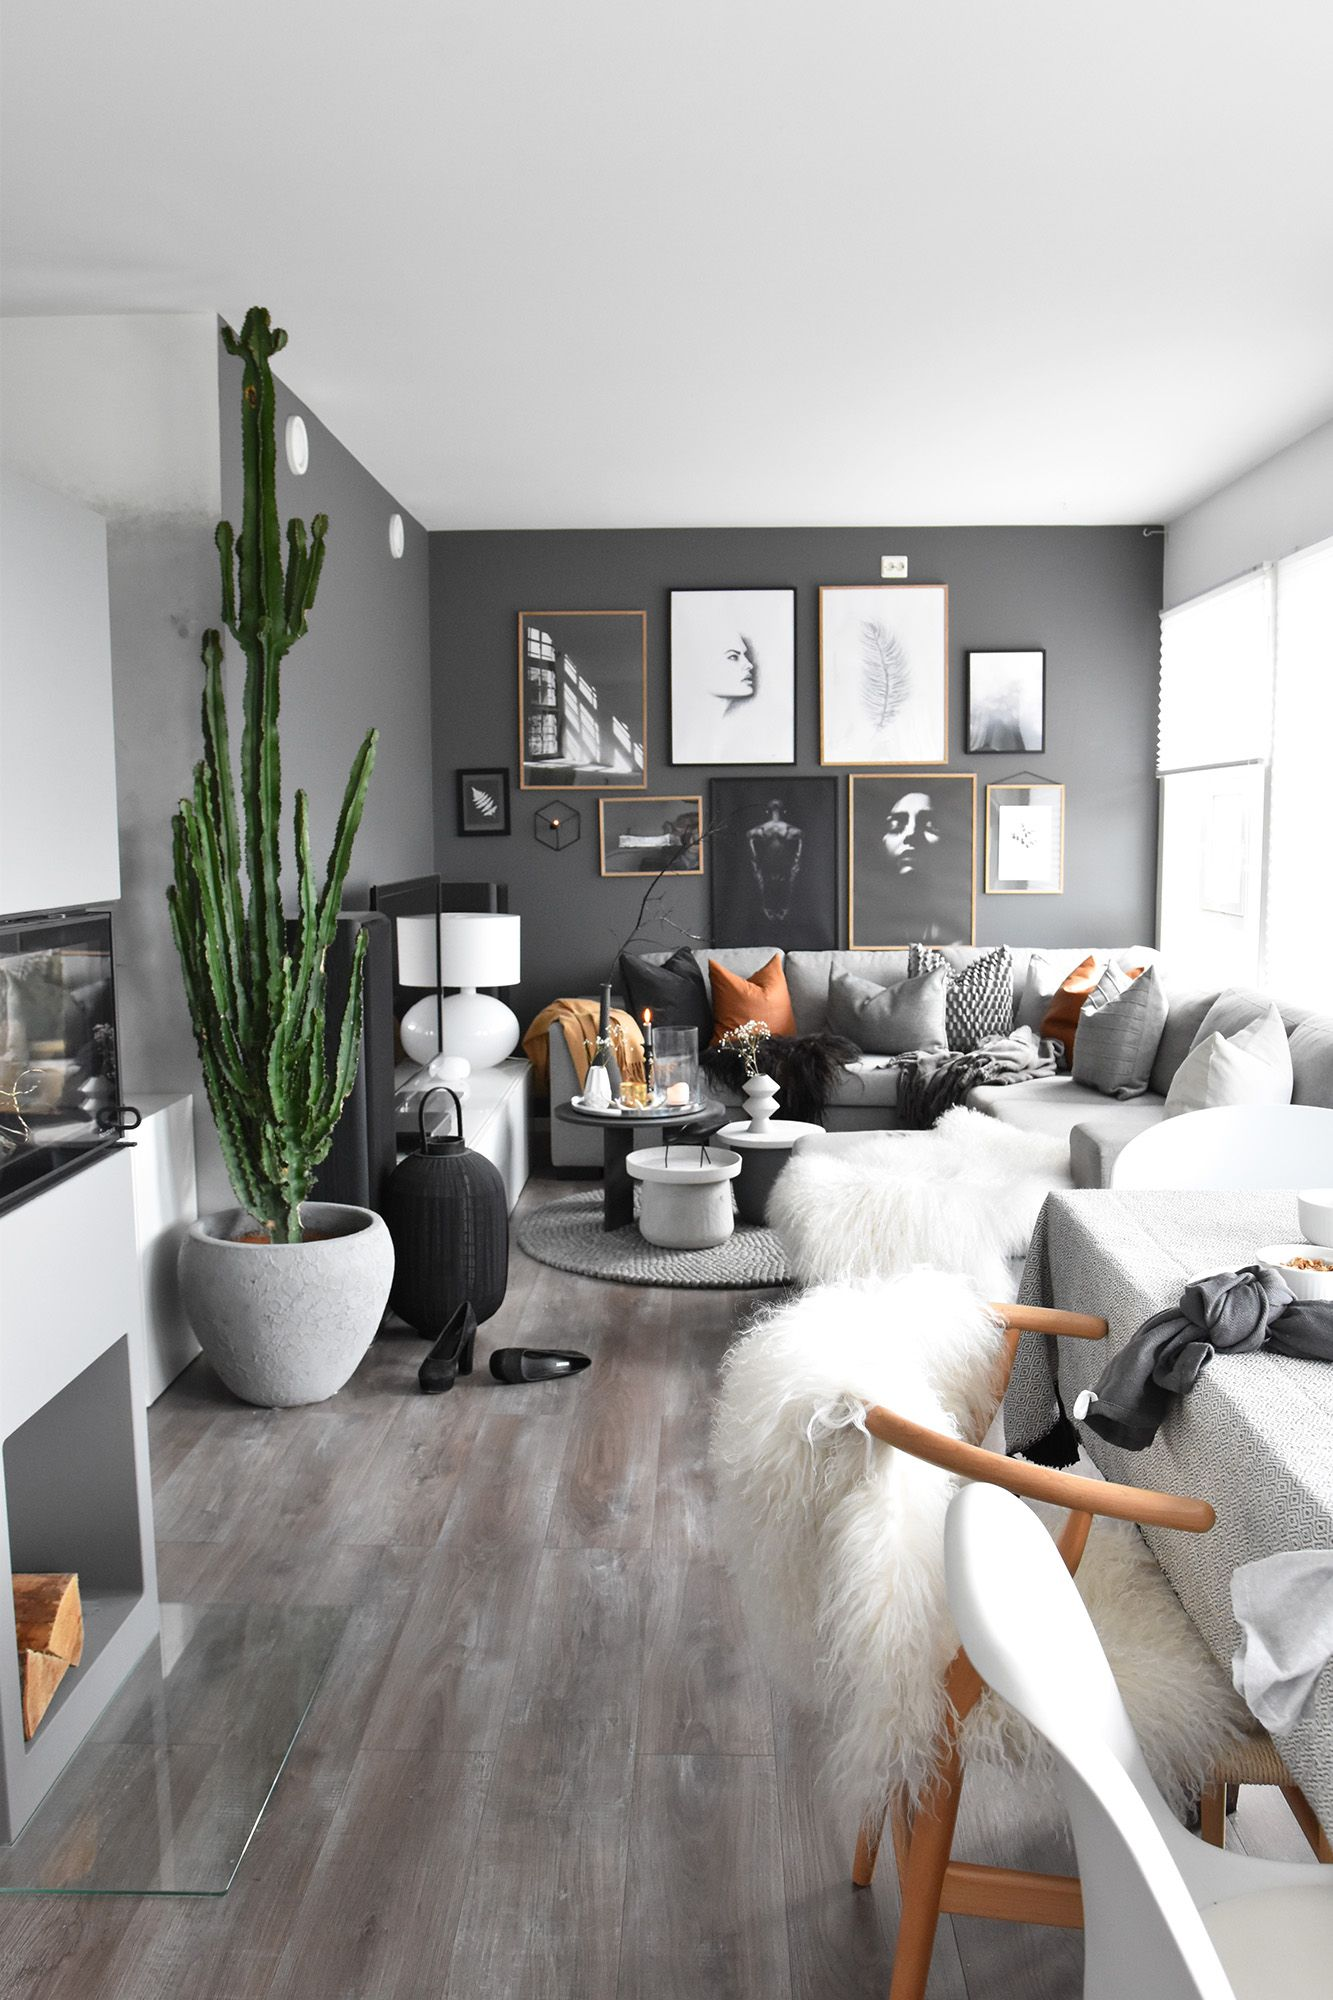 Merveilleux Dark Grey Black Wall Living Room Idea With Indoor Plants And Amazing Wall  Art